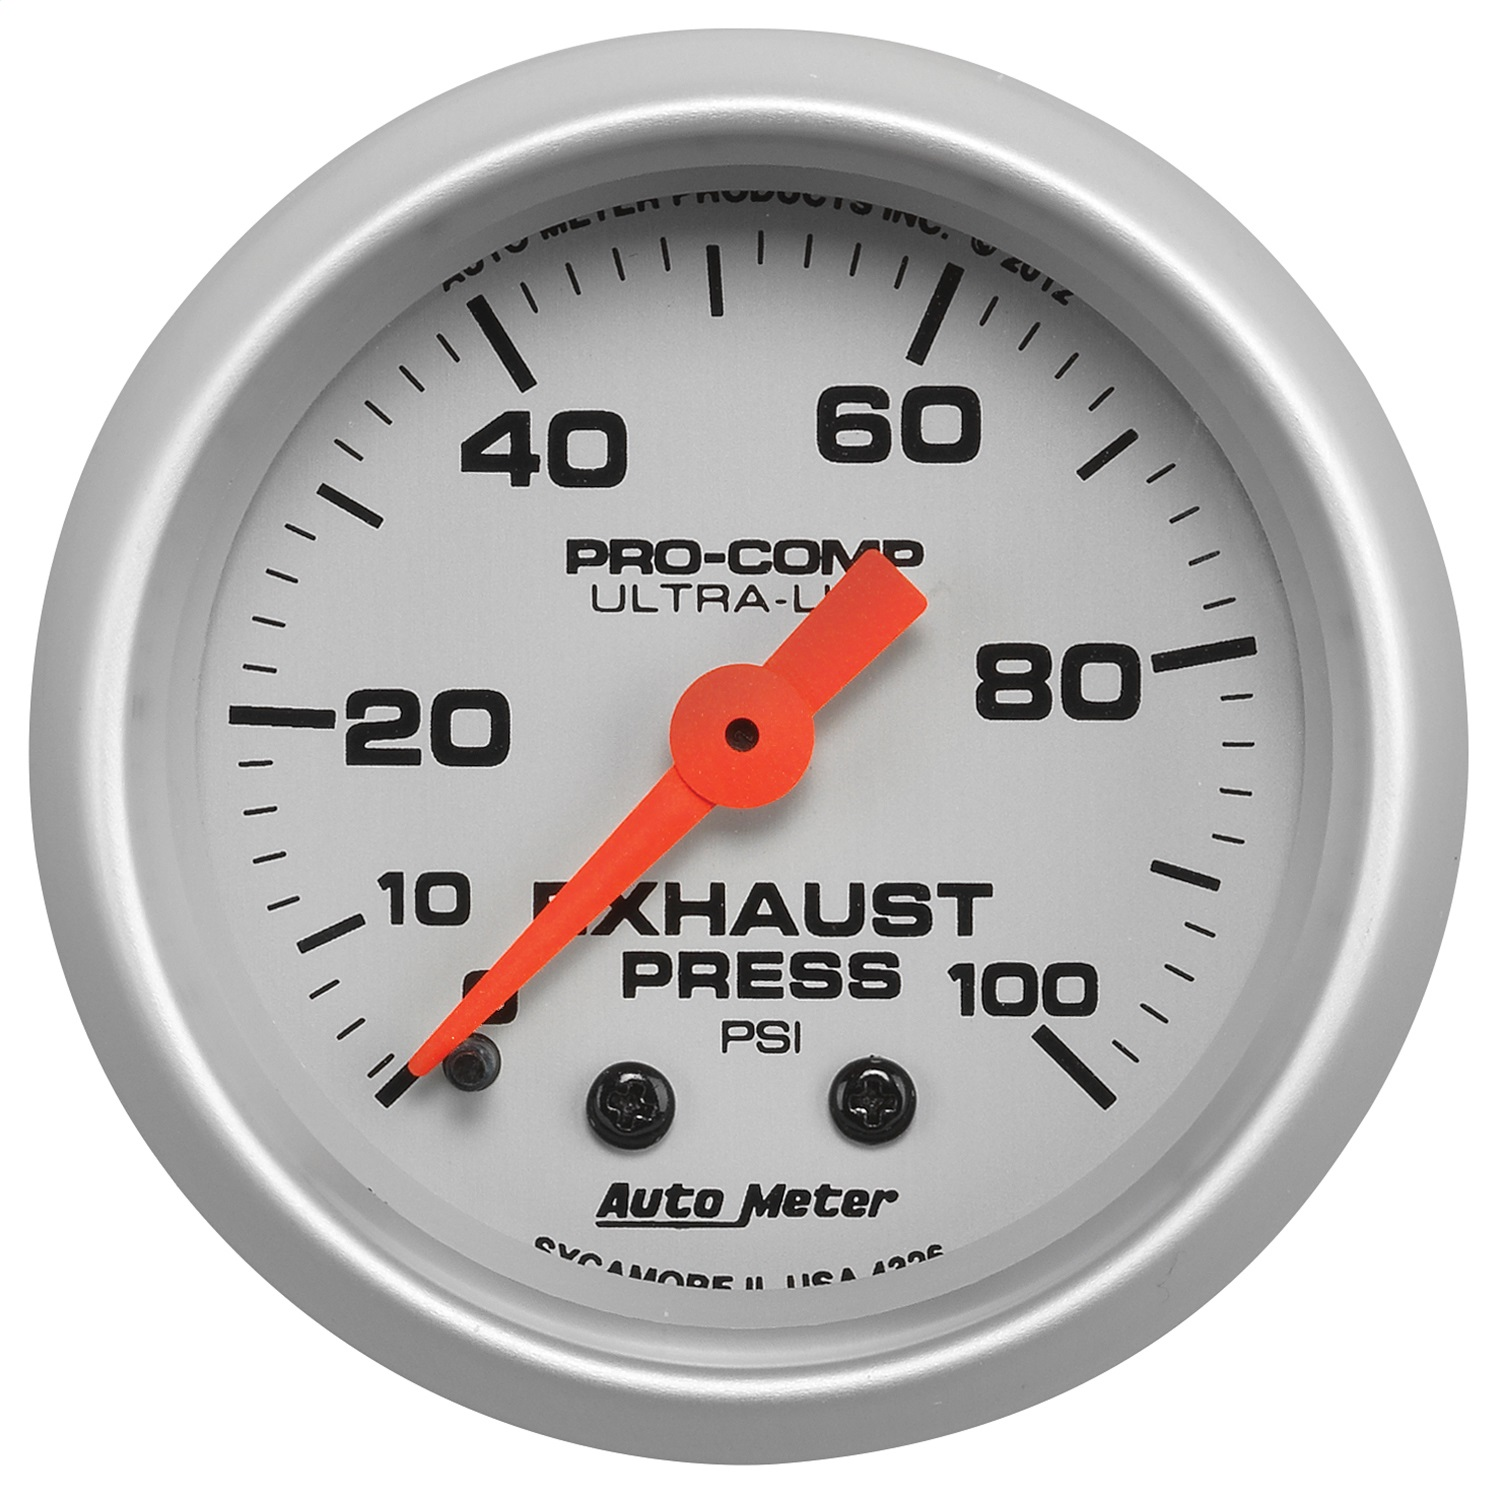 Auto Meter 4326 Ultra-Lite Mechanical Exhaust Pressure Gauge